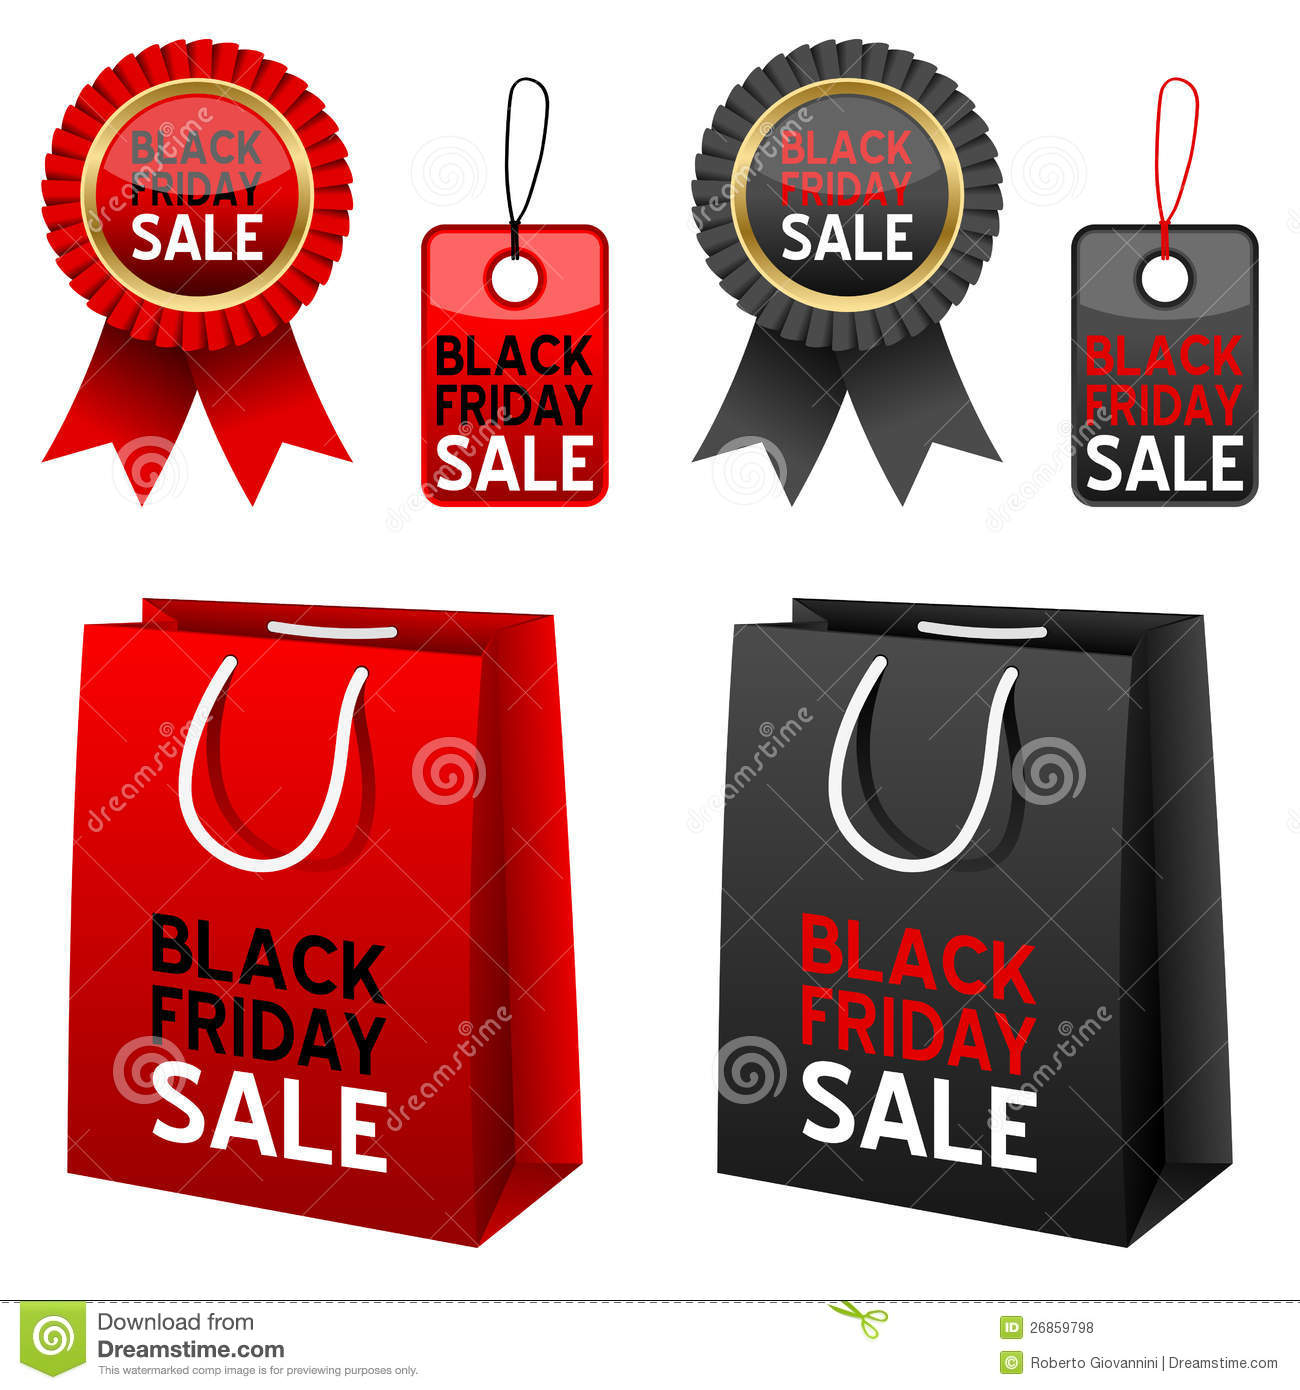 Black Friday Sale Collection Royalty Free Stock Photos ...